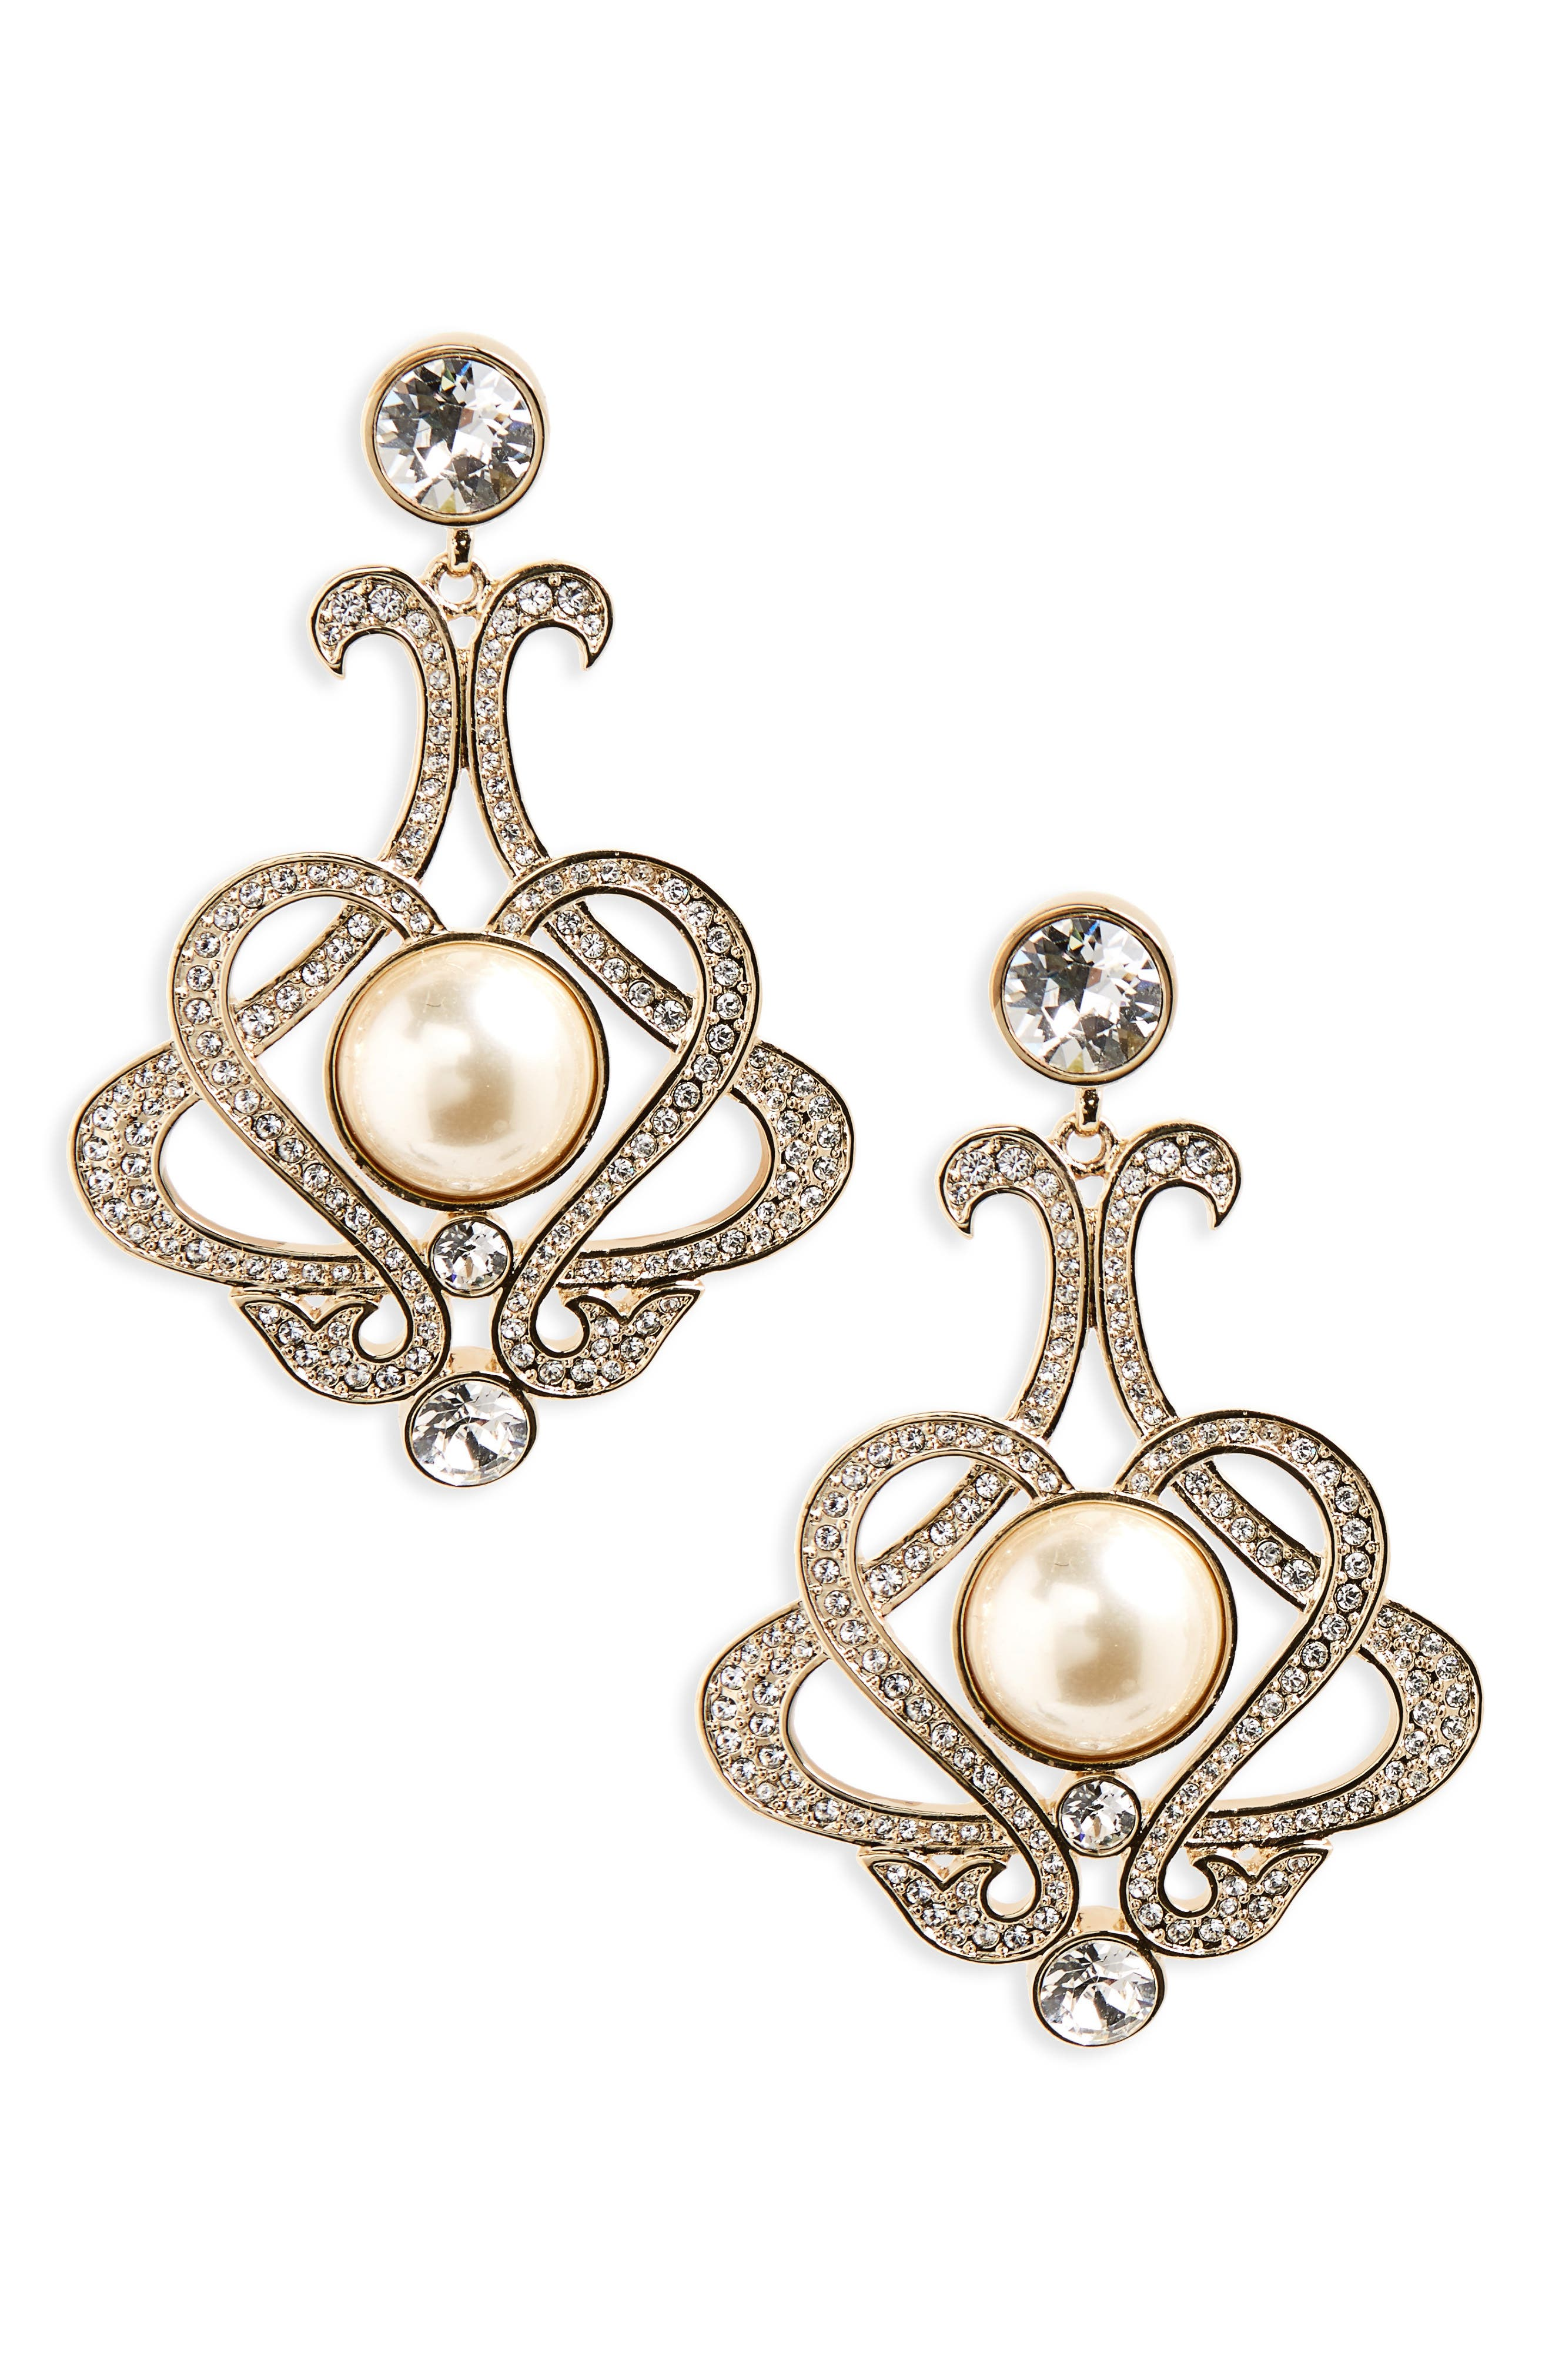 Crystal & Imitation Pearl Chandelier Earrings,                         Main,                         color, Ivory Pearl / Gold